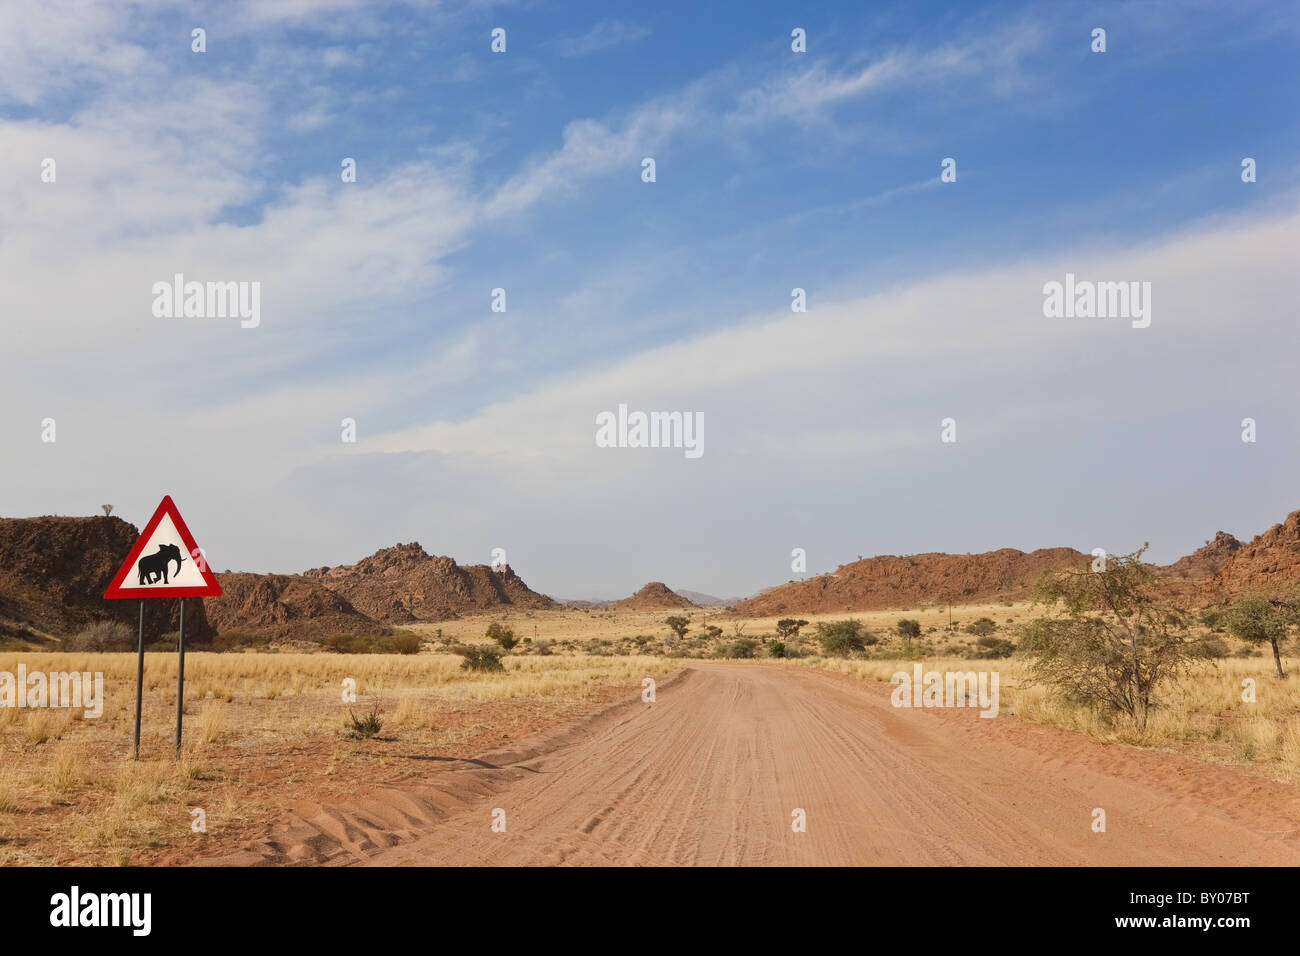 Elephant road sign & road, Damaraland, Namibia - Stock Image